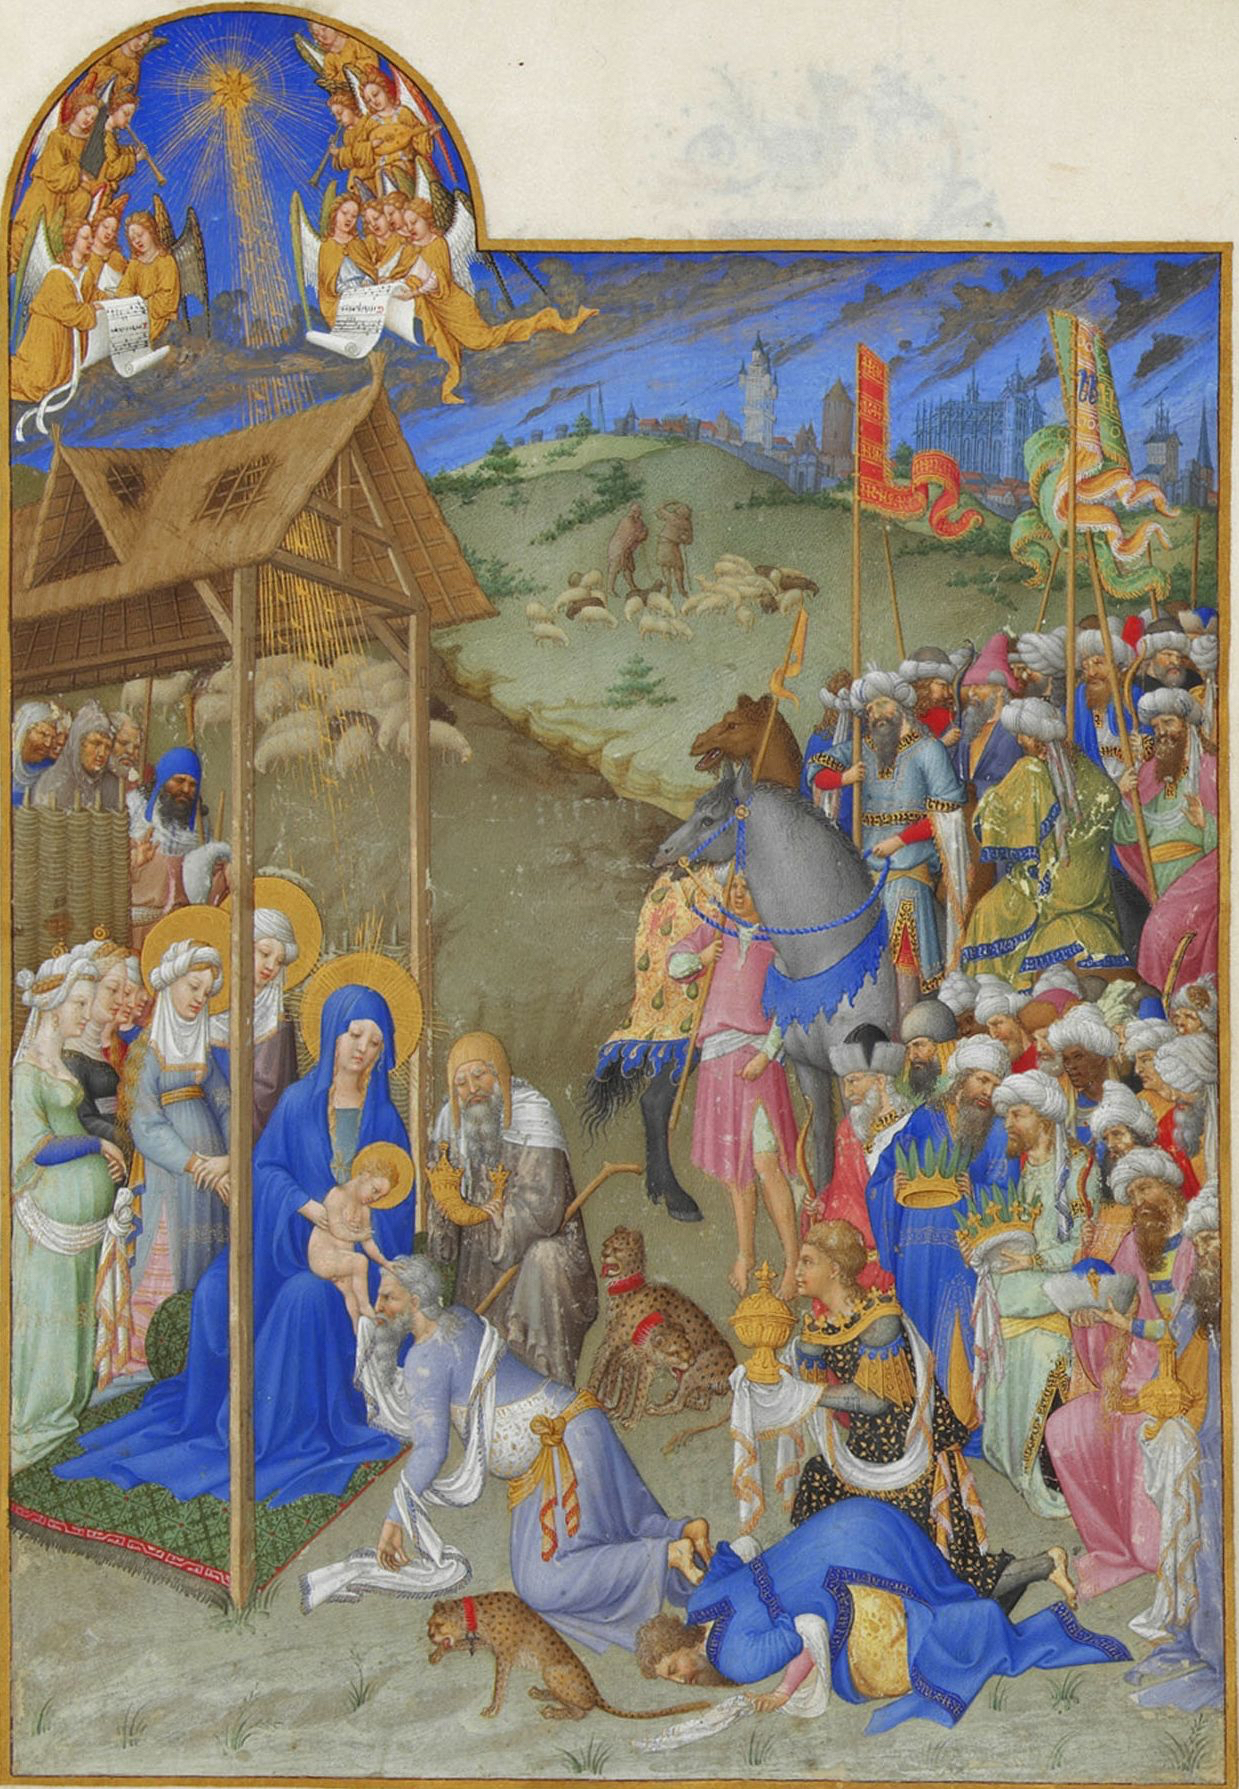 Limbourg Brothers,   The Tres Riches Heures of Jean De Berry, Calendar: Adoration of the Magi,   Ink on vellum, 1413-1416